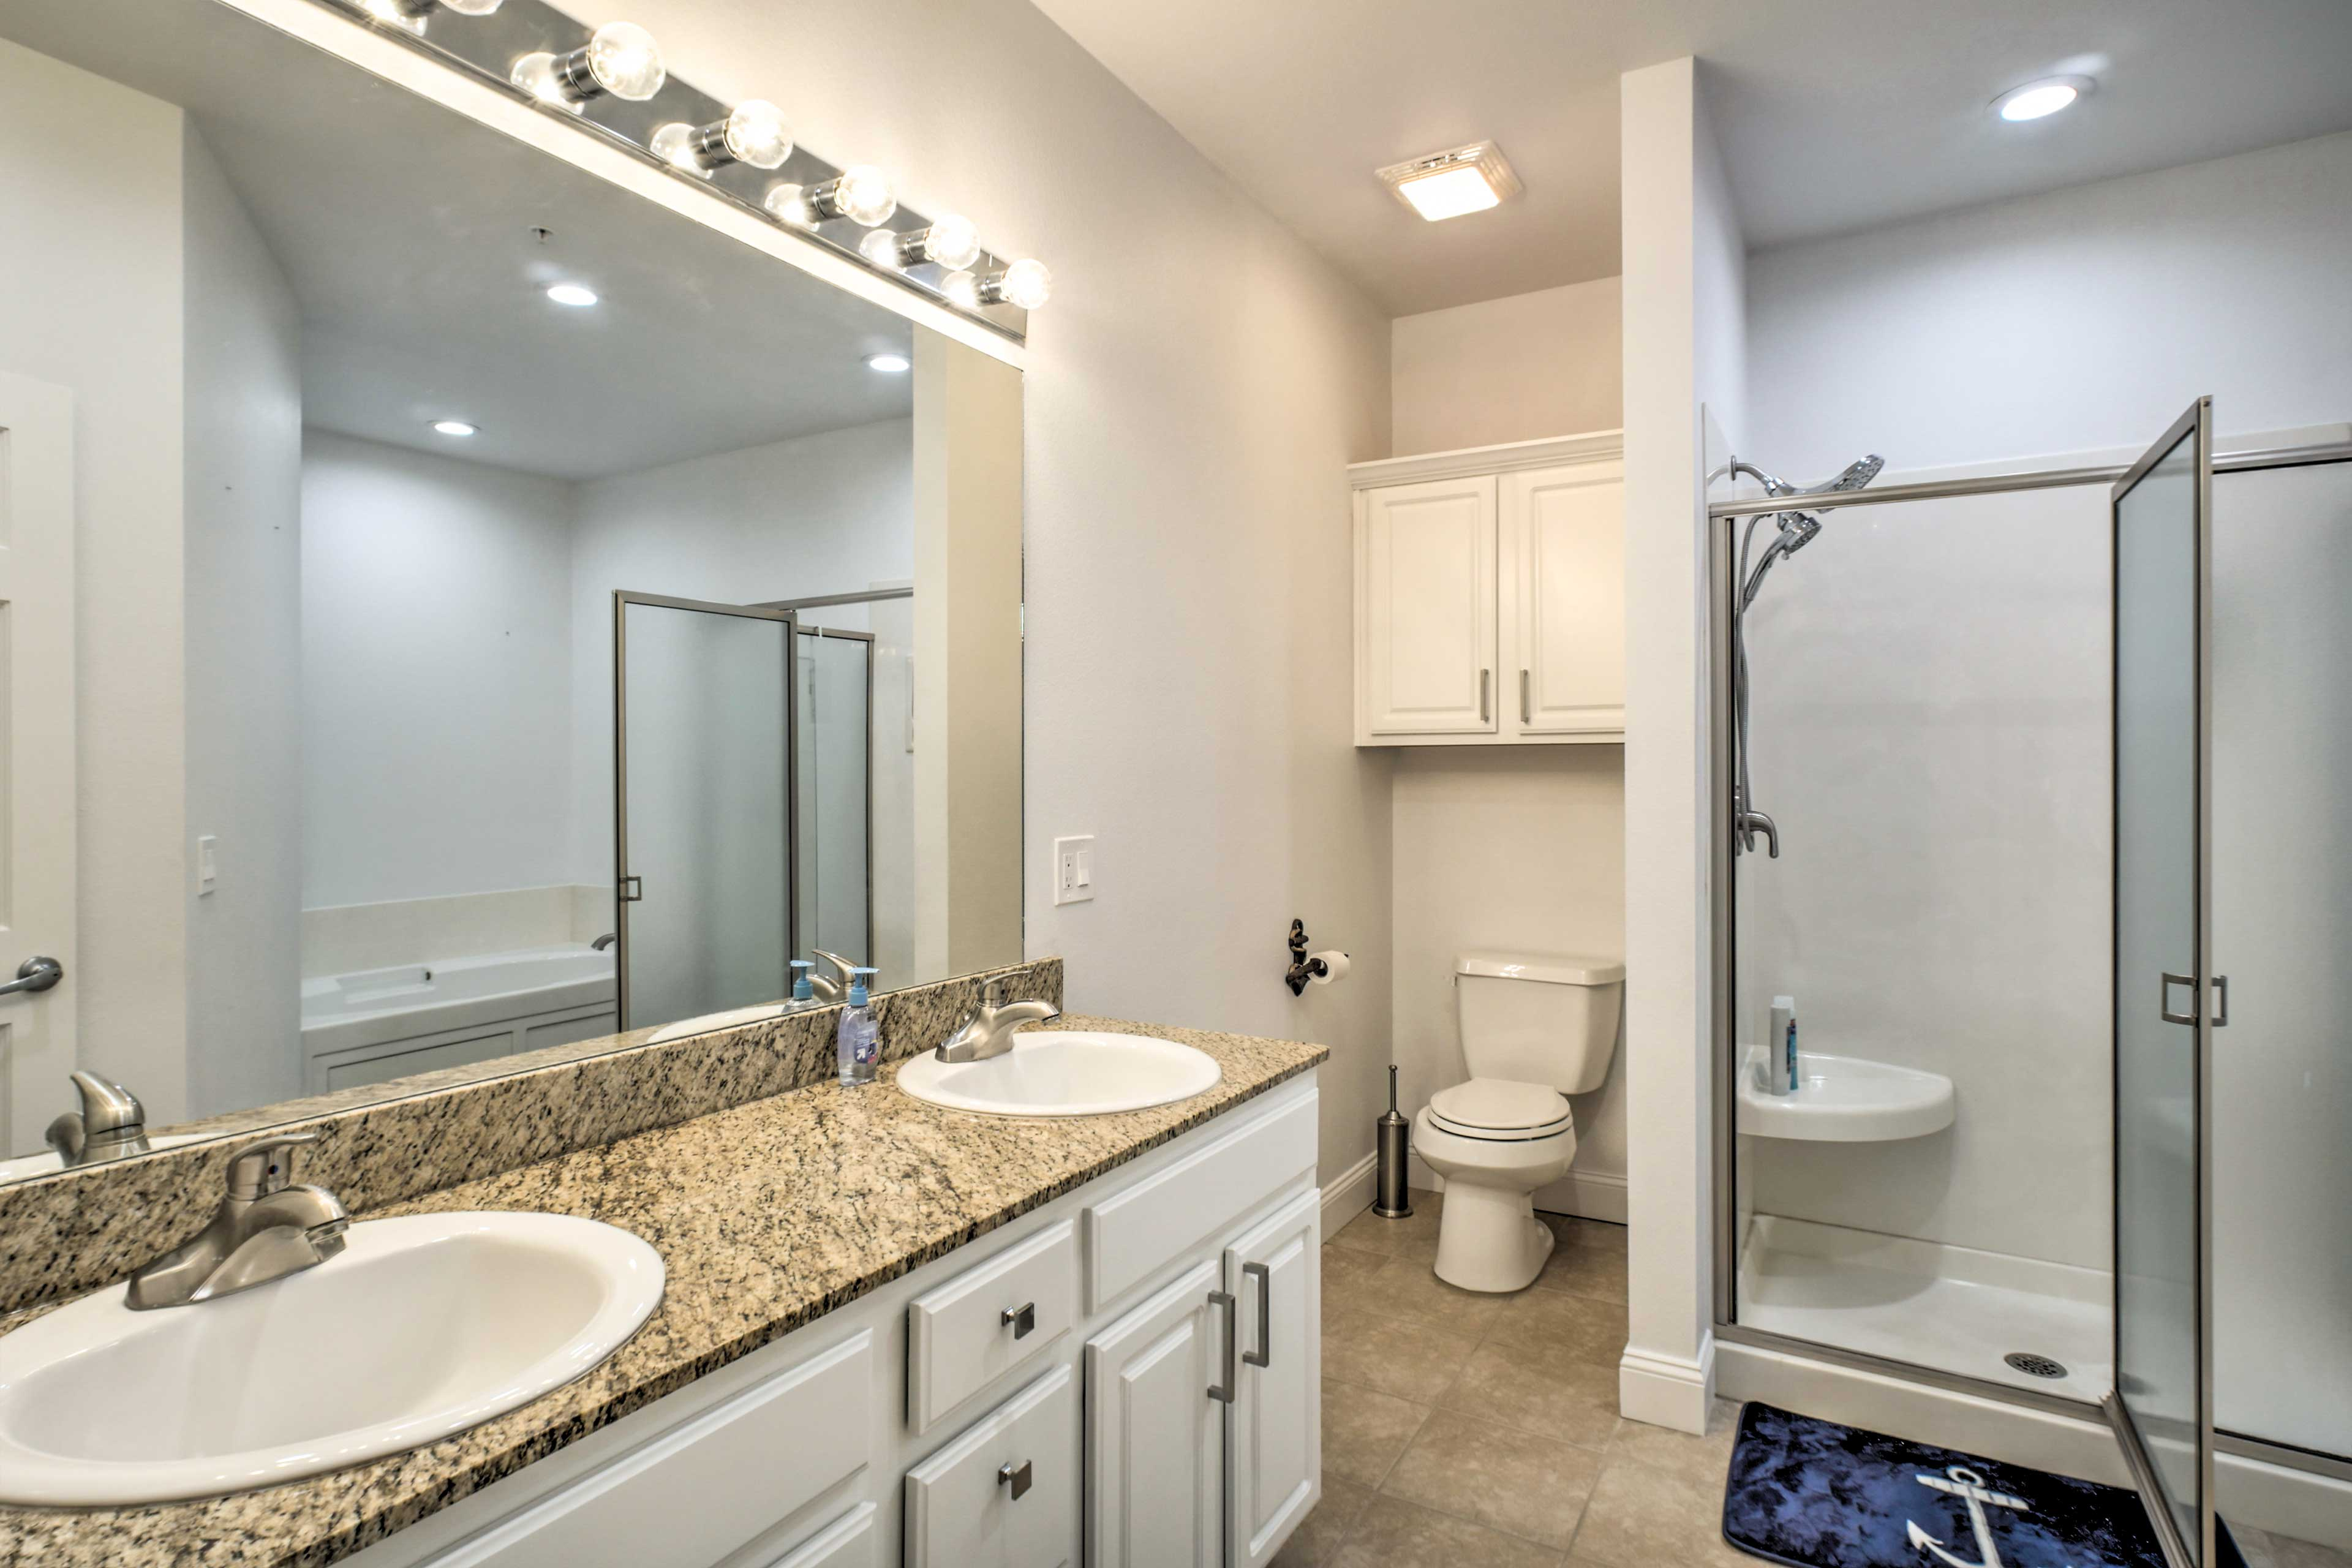 Step into the ensuite master bathroom and take a steamy shower.